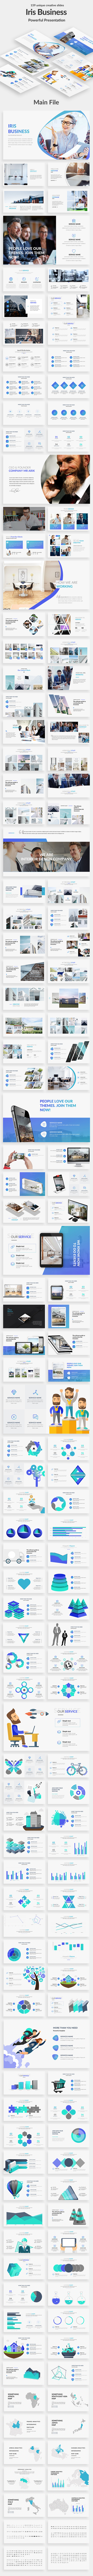 Iris Business Professional Keynote Template - Business Keynote Templates